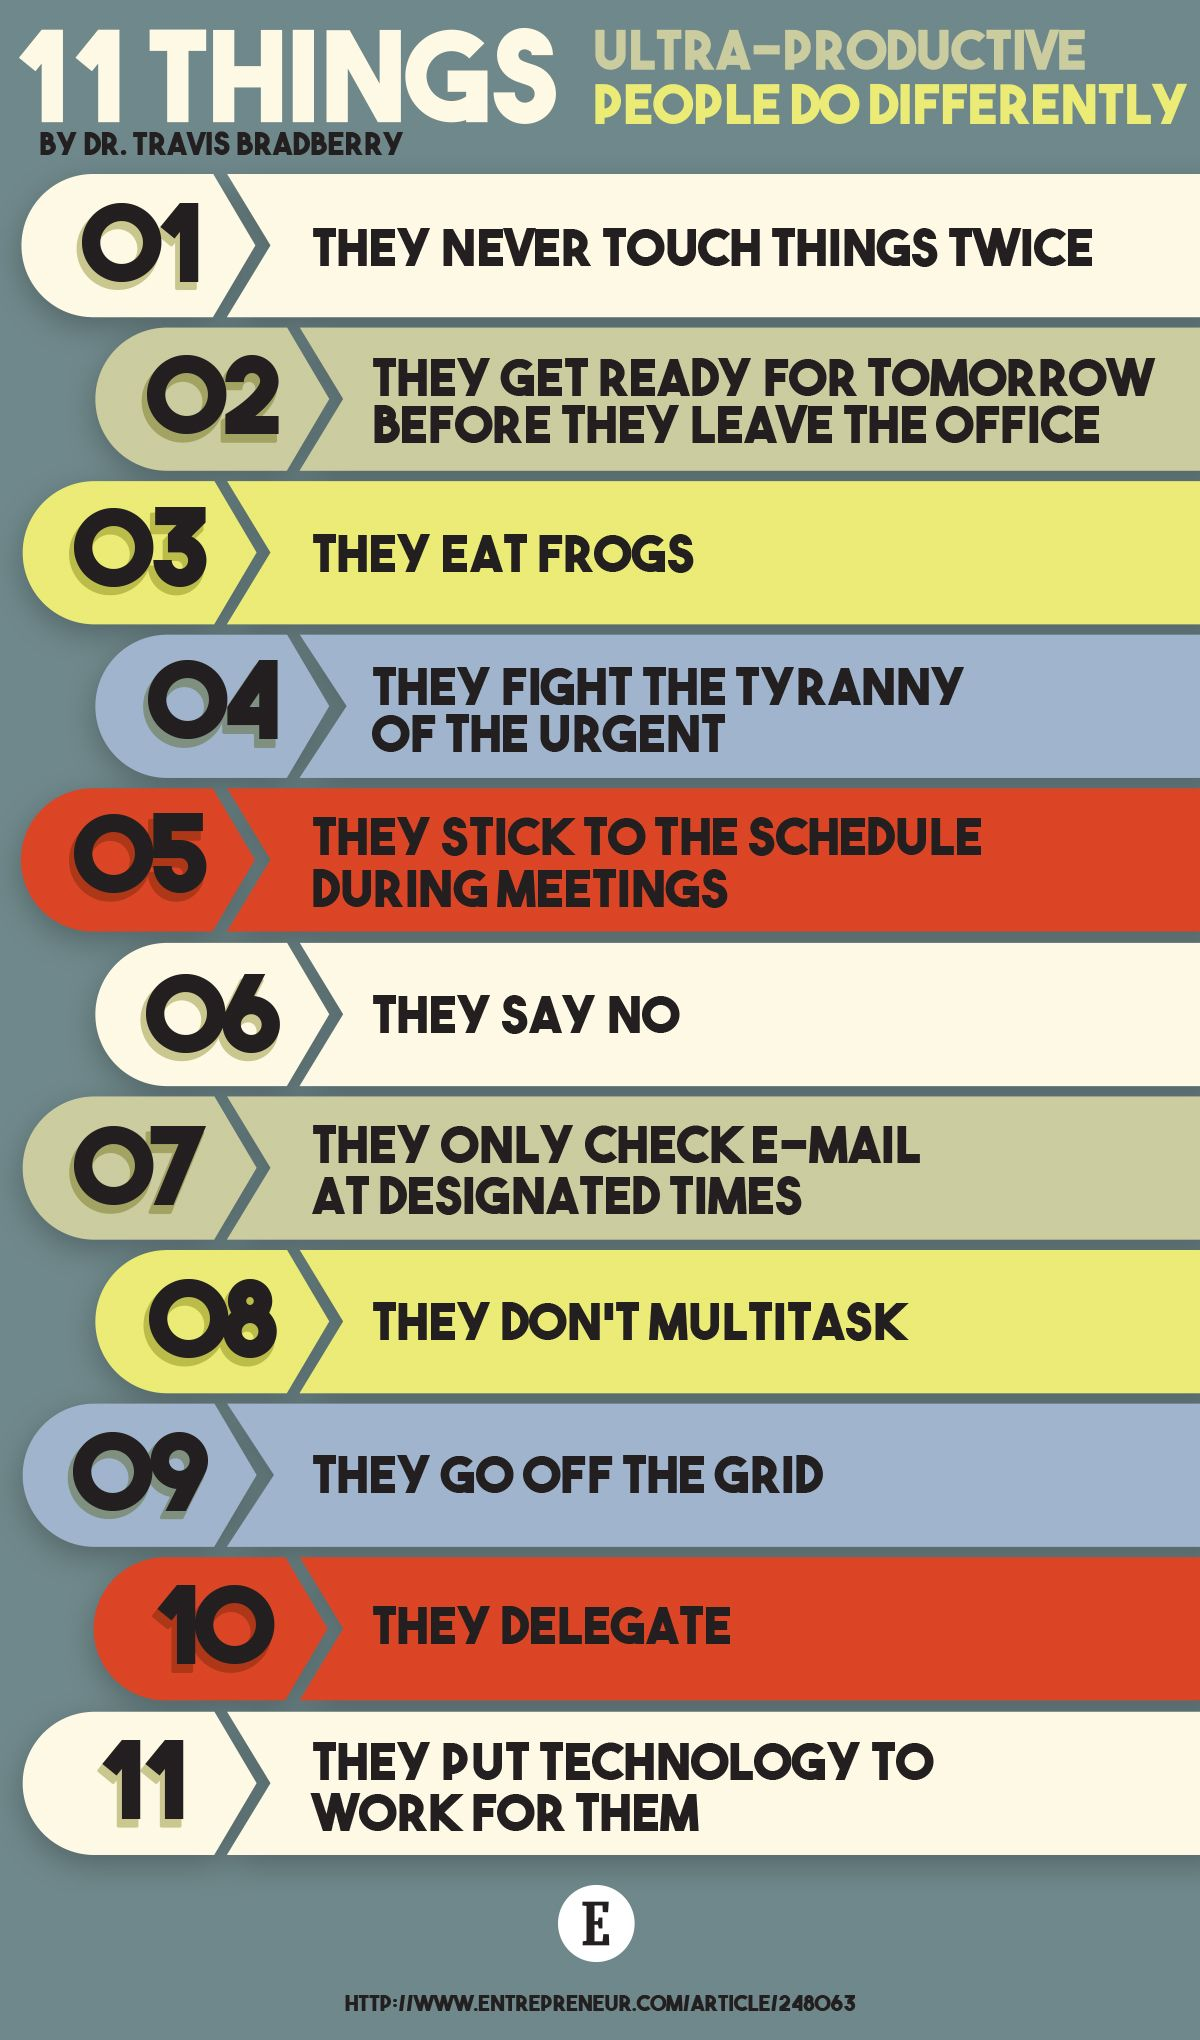 11 Things Productive People Do Differently